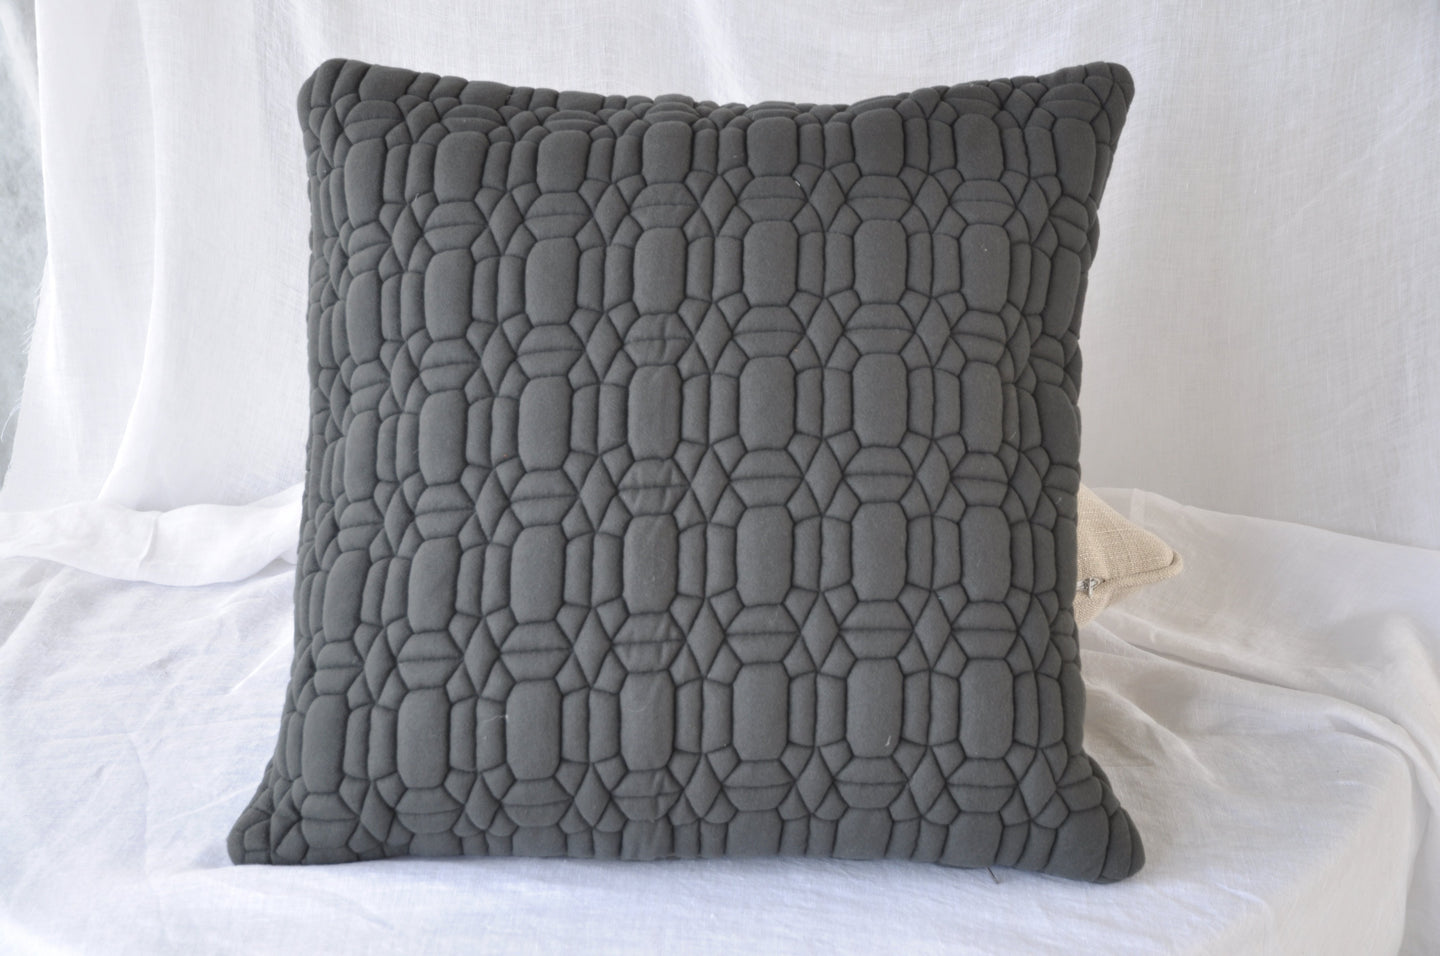 Boussac Cocoon Cushion